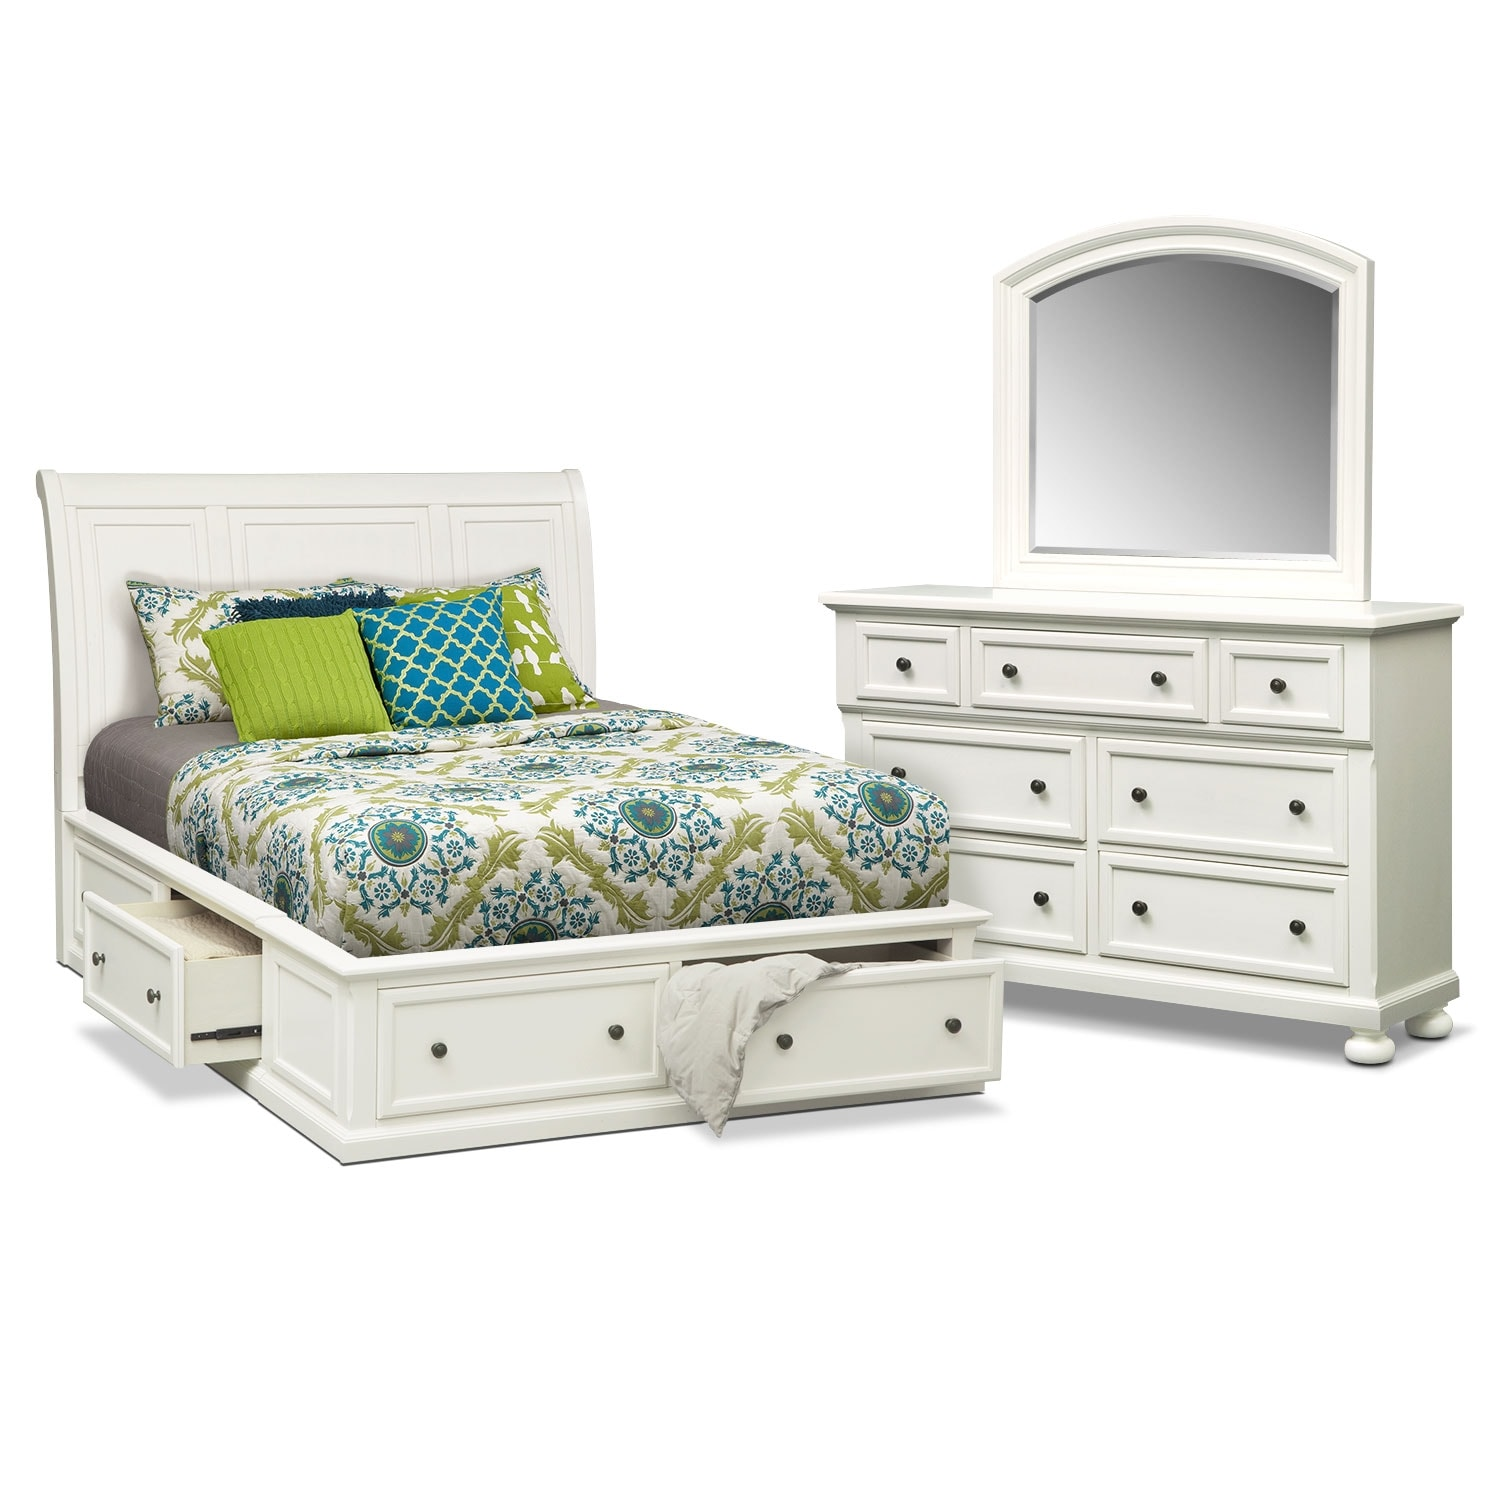 Hanover 5-Piece King Storage Bedroom Set - White